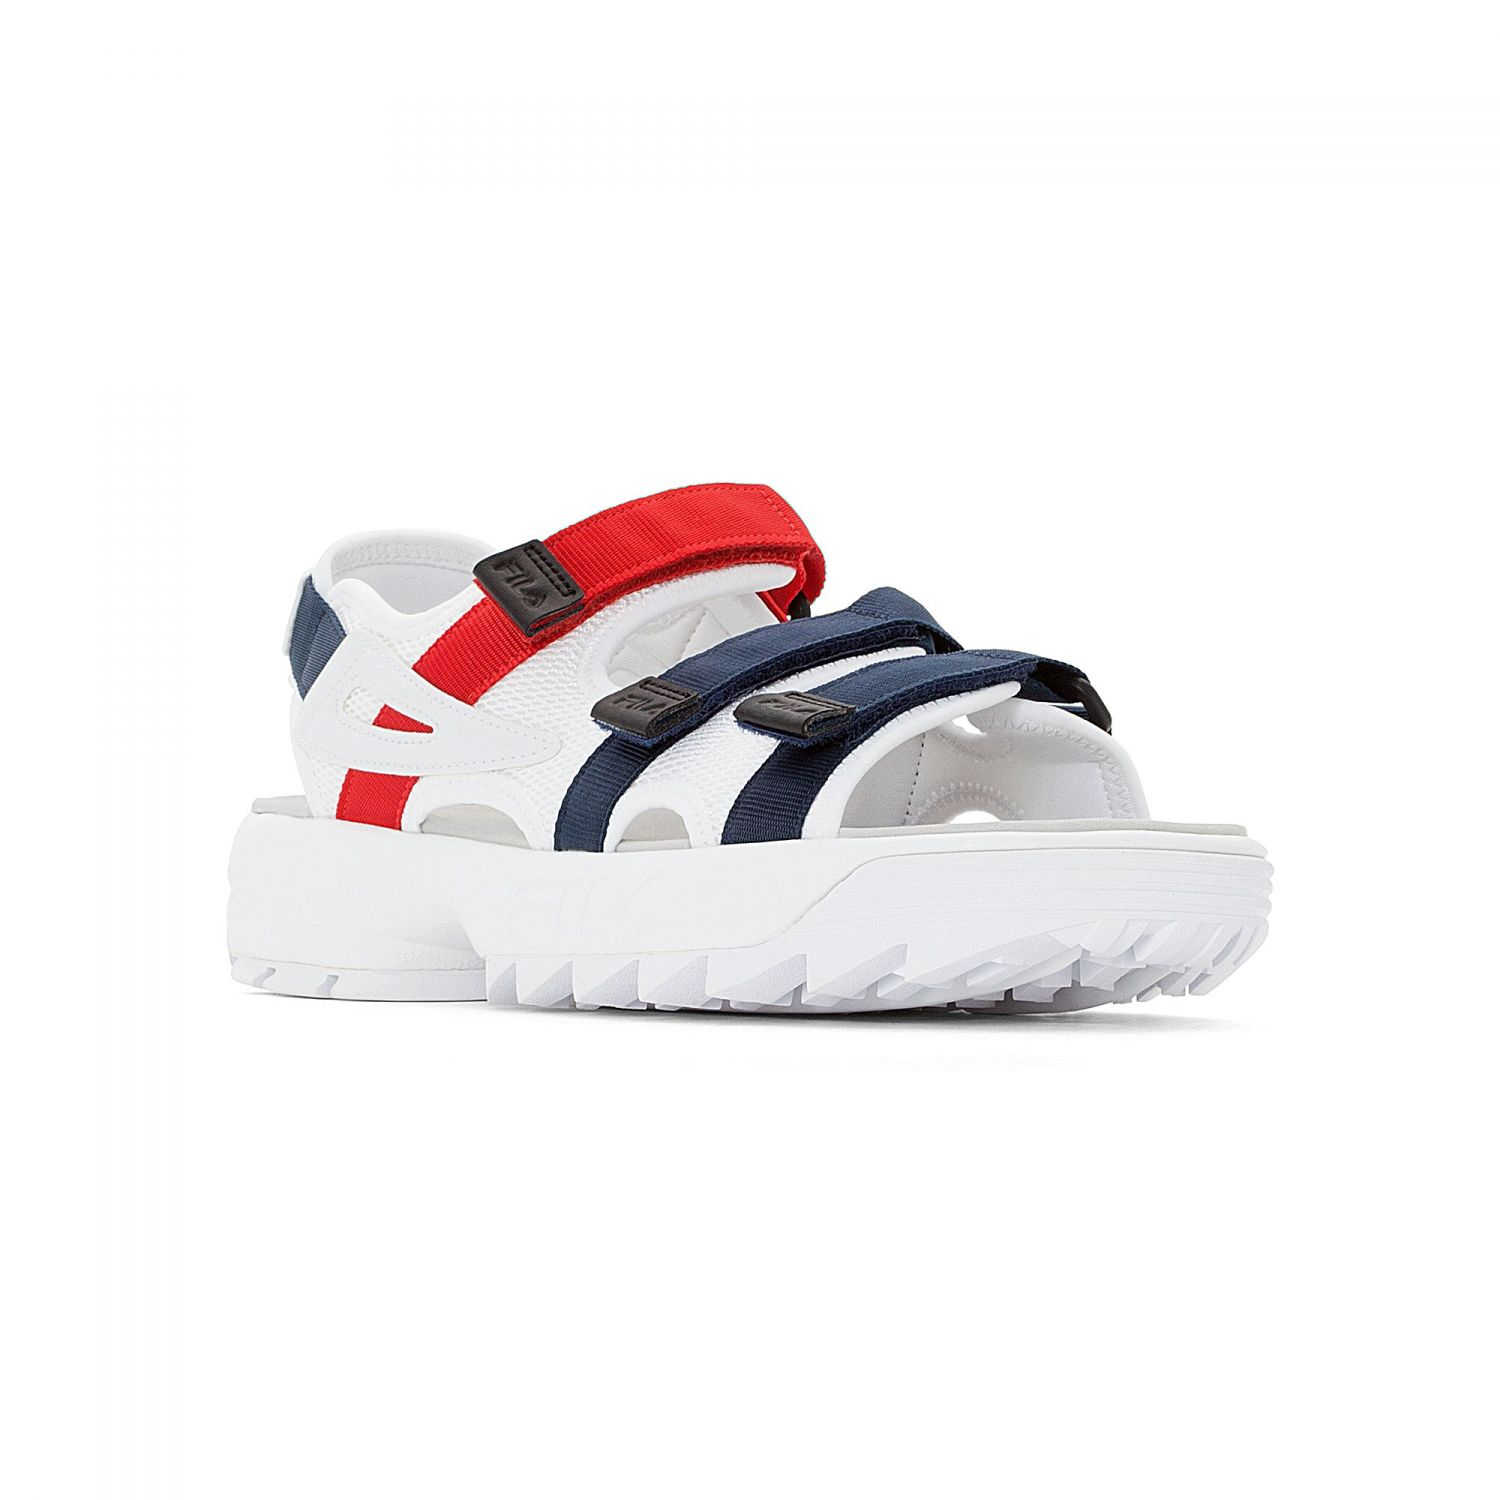 e55114415765 Fila - Disruptor Sandal white-navy-red - 00014201669...